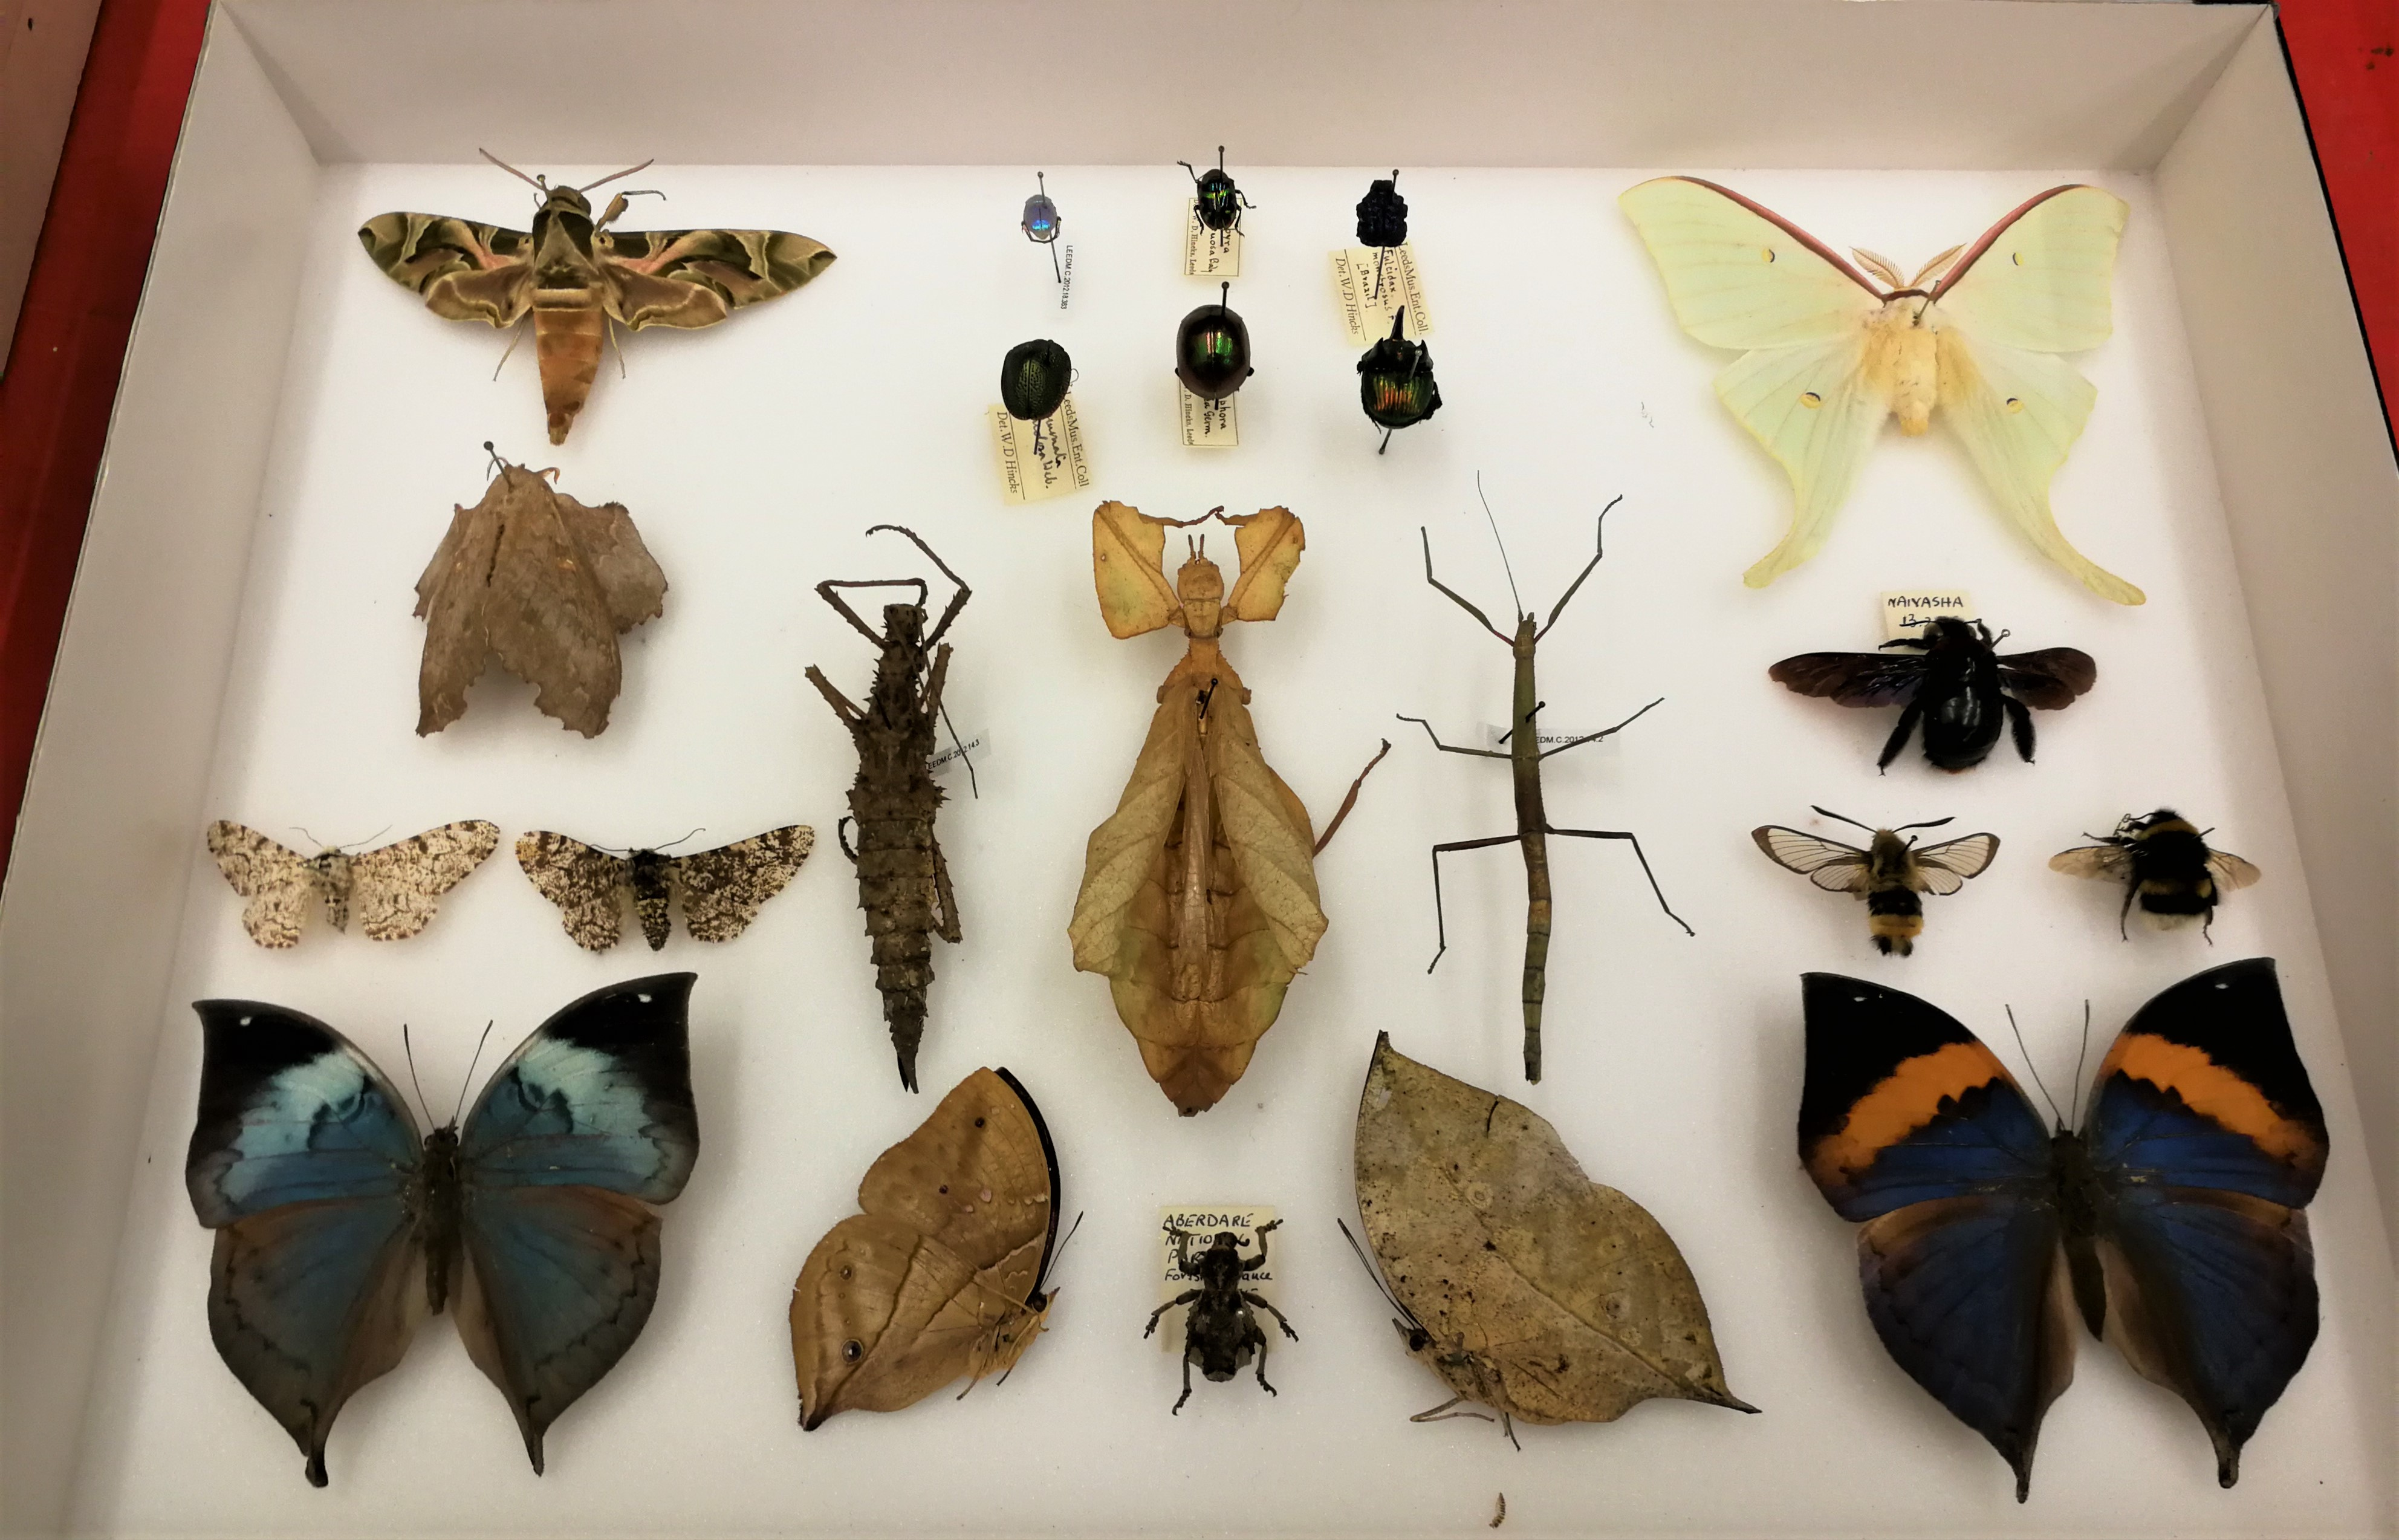 Colour photograph showing a drawer of different insects, including stick insect, bees and butterfulies